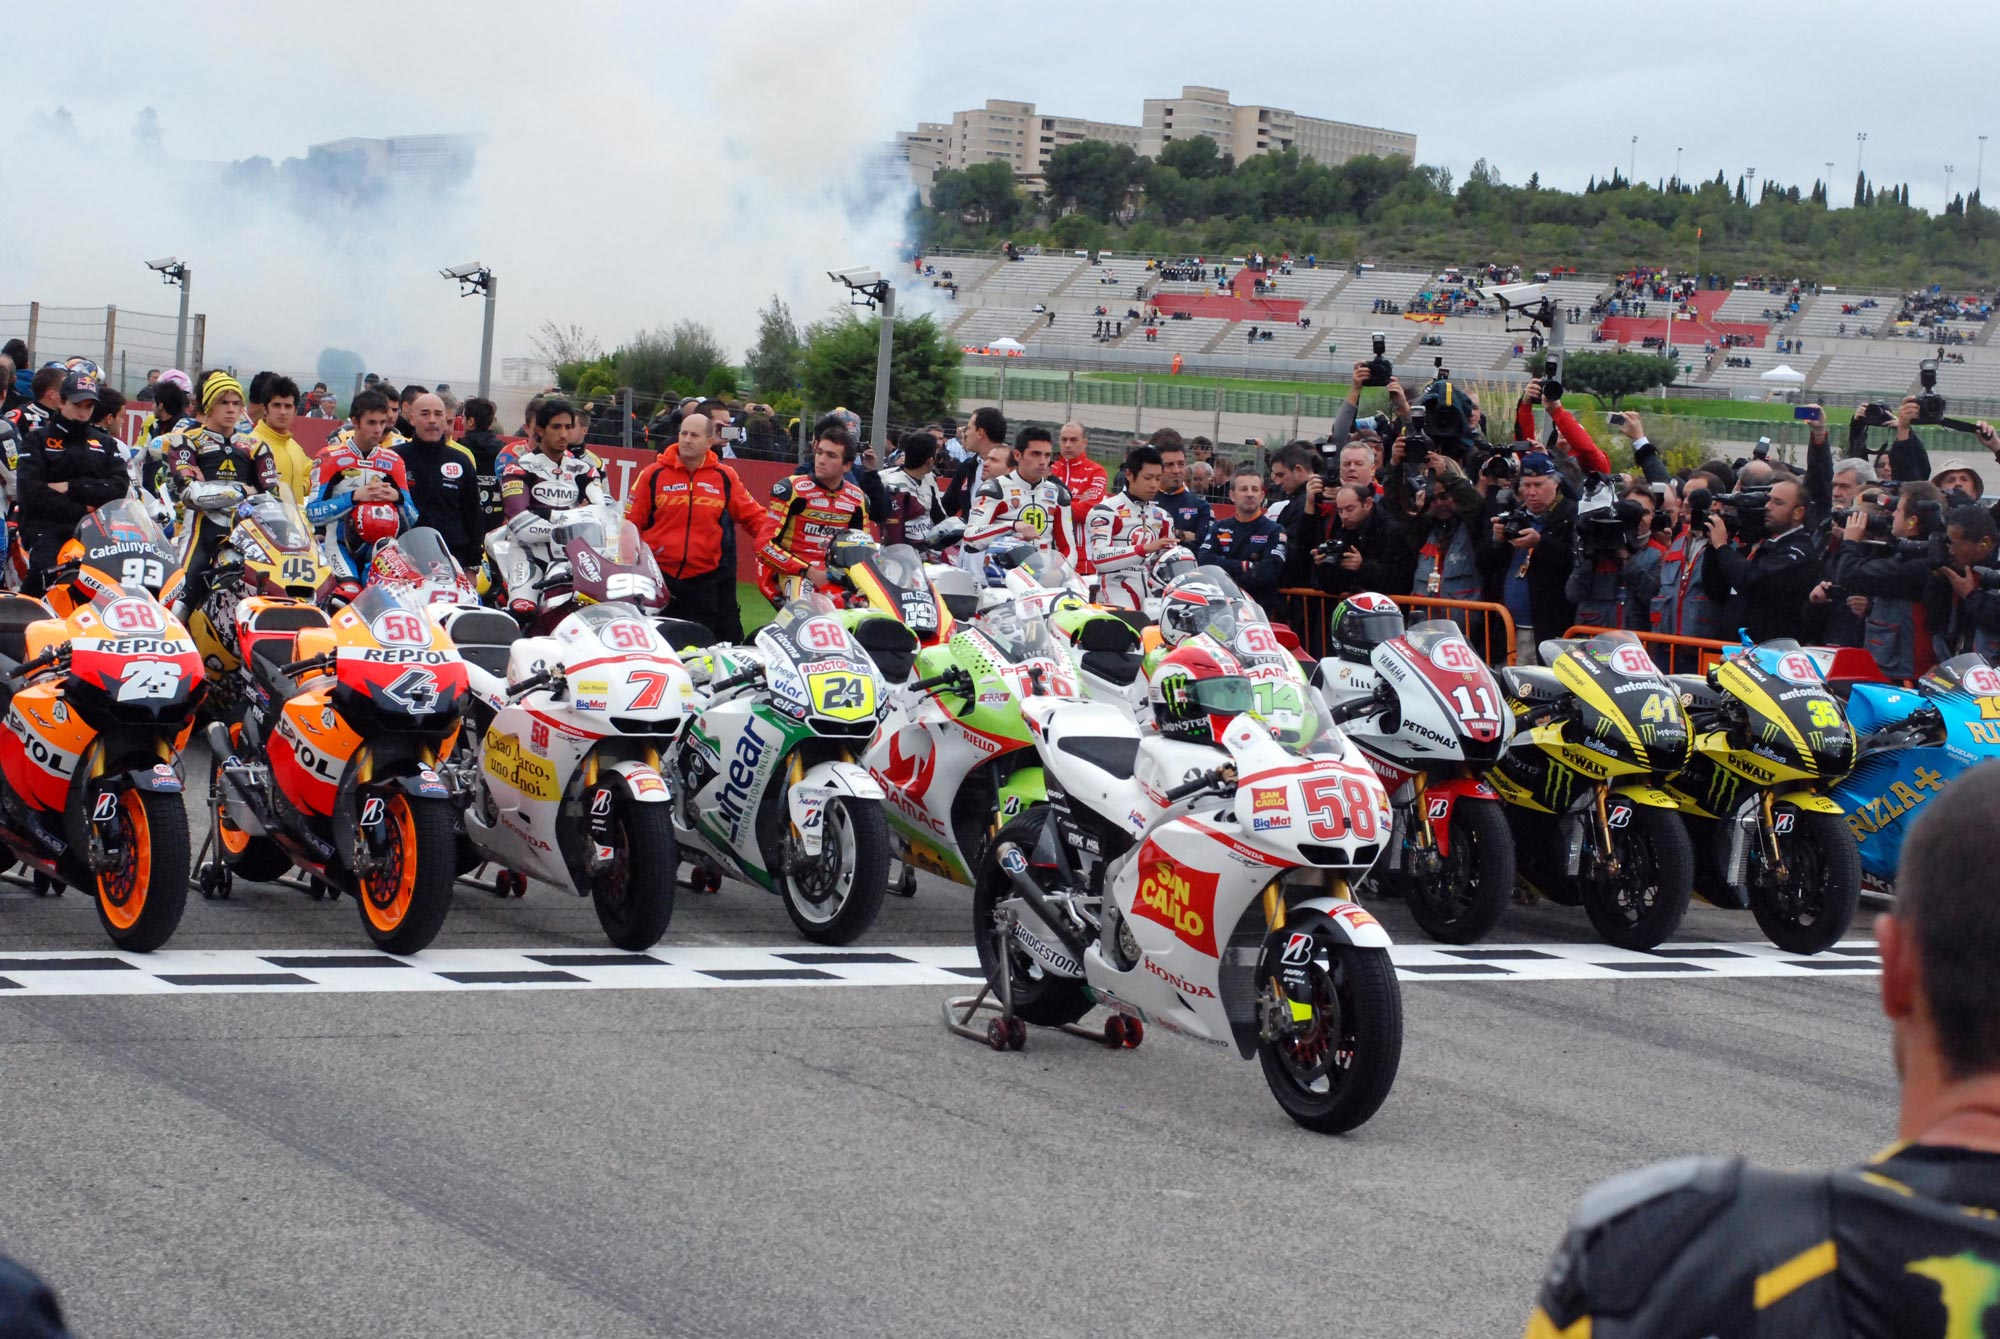 Photos: Marco Simoncelli Tribute Ride at Valencia - Asphalt & Rubber